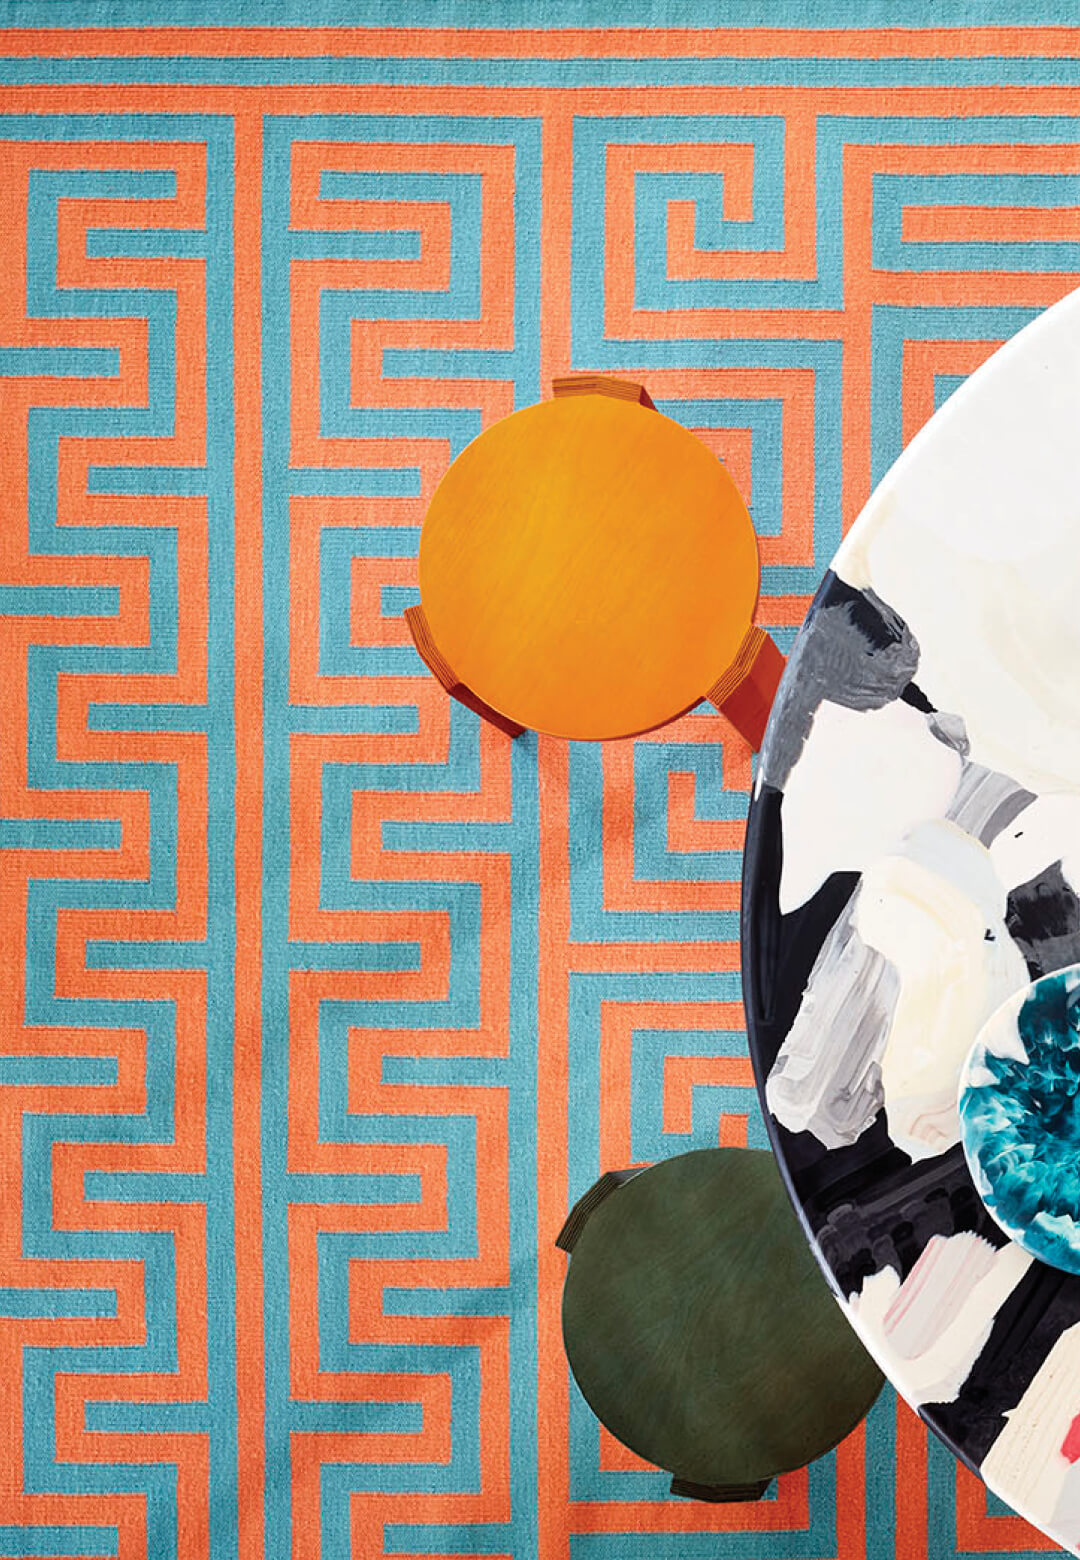 Meandros Mint, from the Mediterranean rug collection by Adam Nathaniel Furman for FLOOR_STORY | Mediterranean rug collection for Floor Story, by Adam Nathaniel Furman | STIRworld